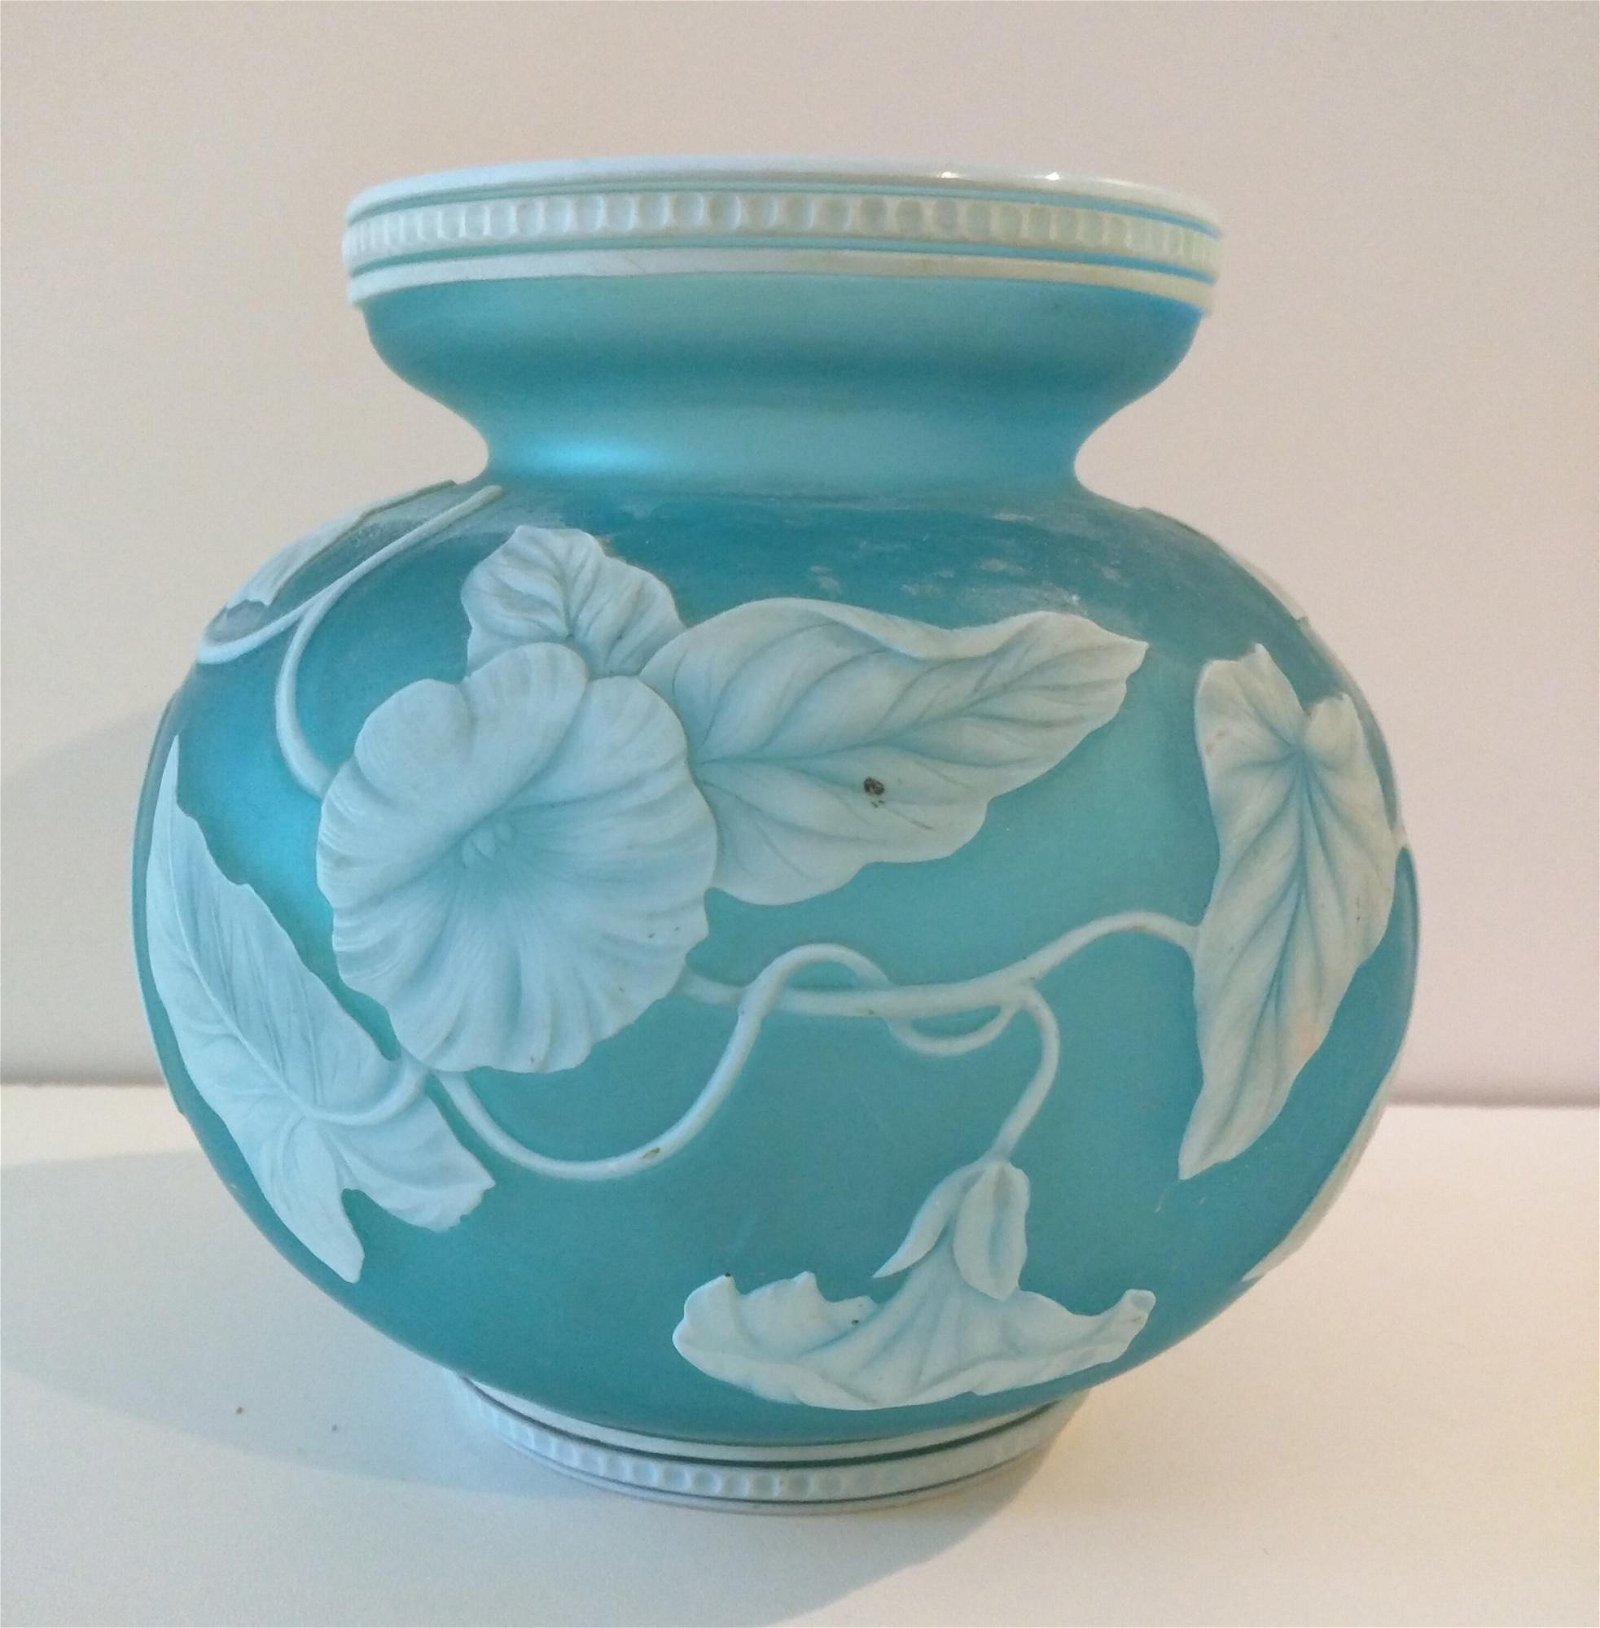 1920's English Cameo Glass Attributed to Webb